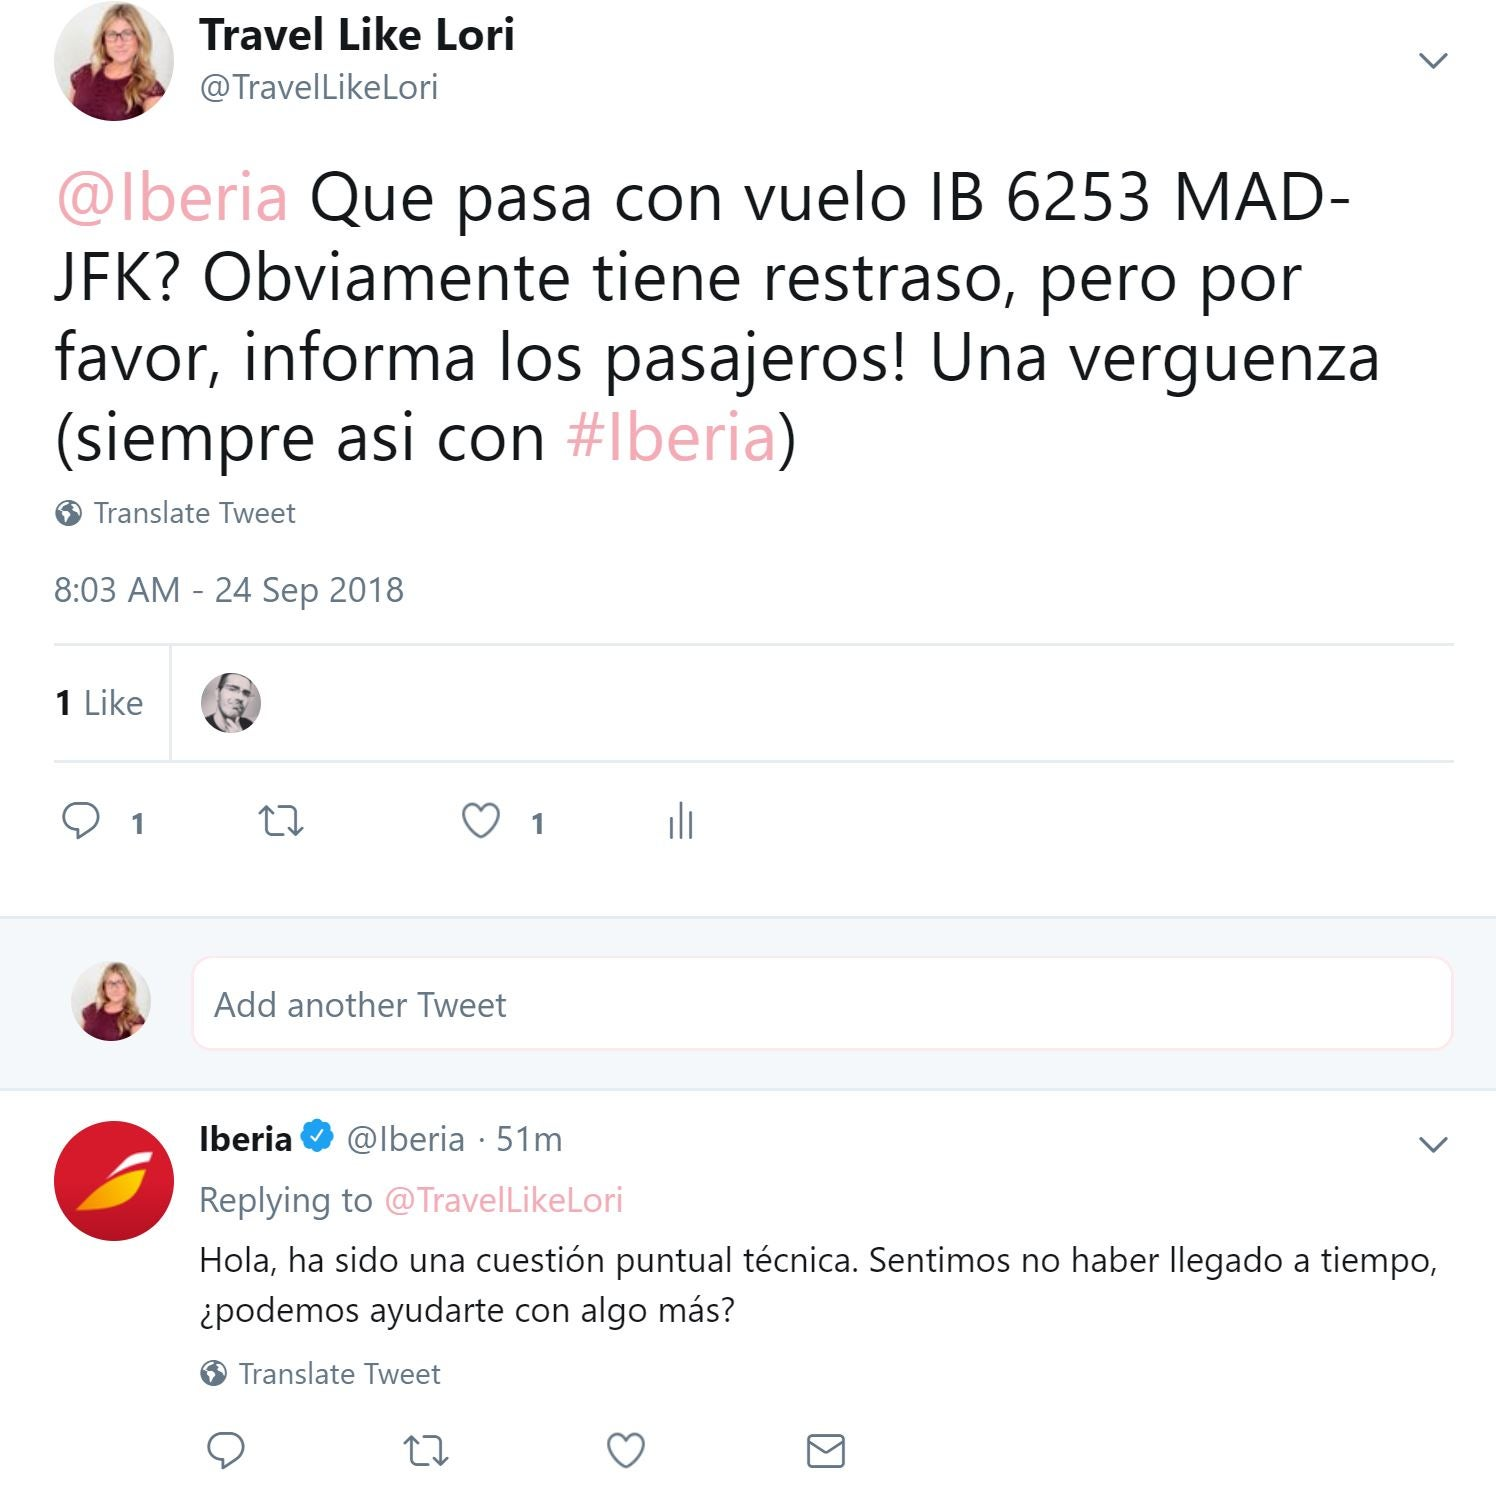 Review Iberia A340 600 Premium Economy From Mad To Jfk Voucher Share Tea 50000 I Tweeted At About The Delay Two Days After Flight Received A Generic Unhelpful Response Saying That It Was Sorry For